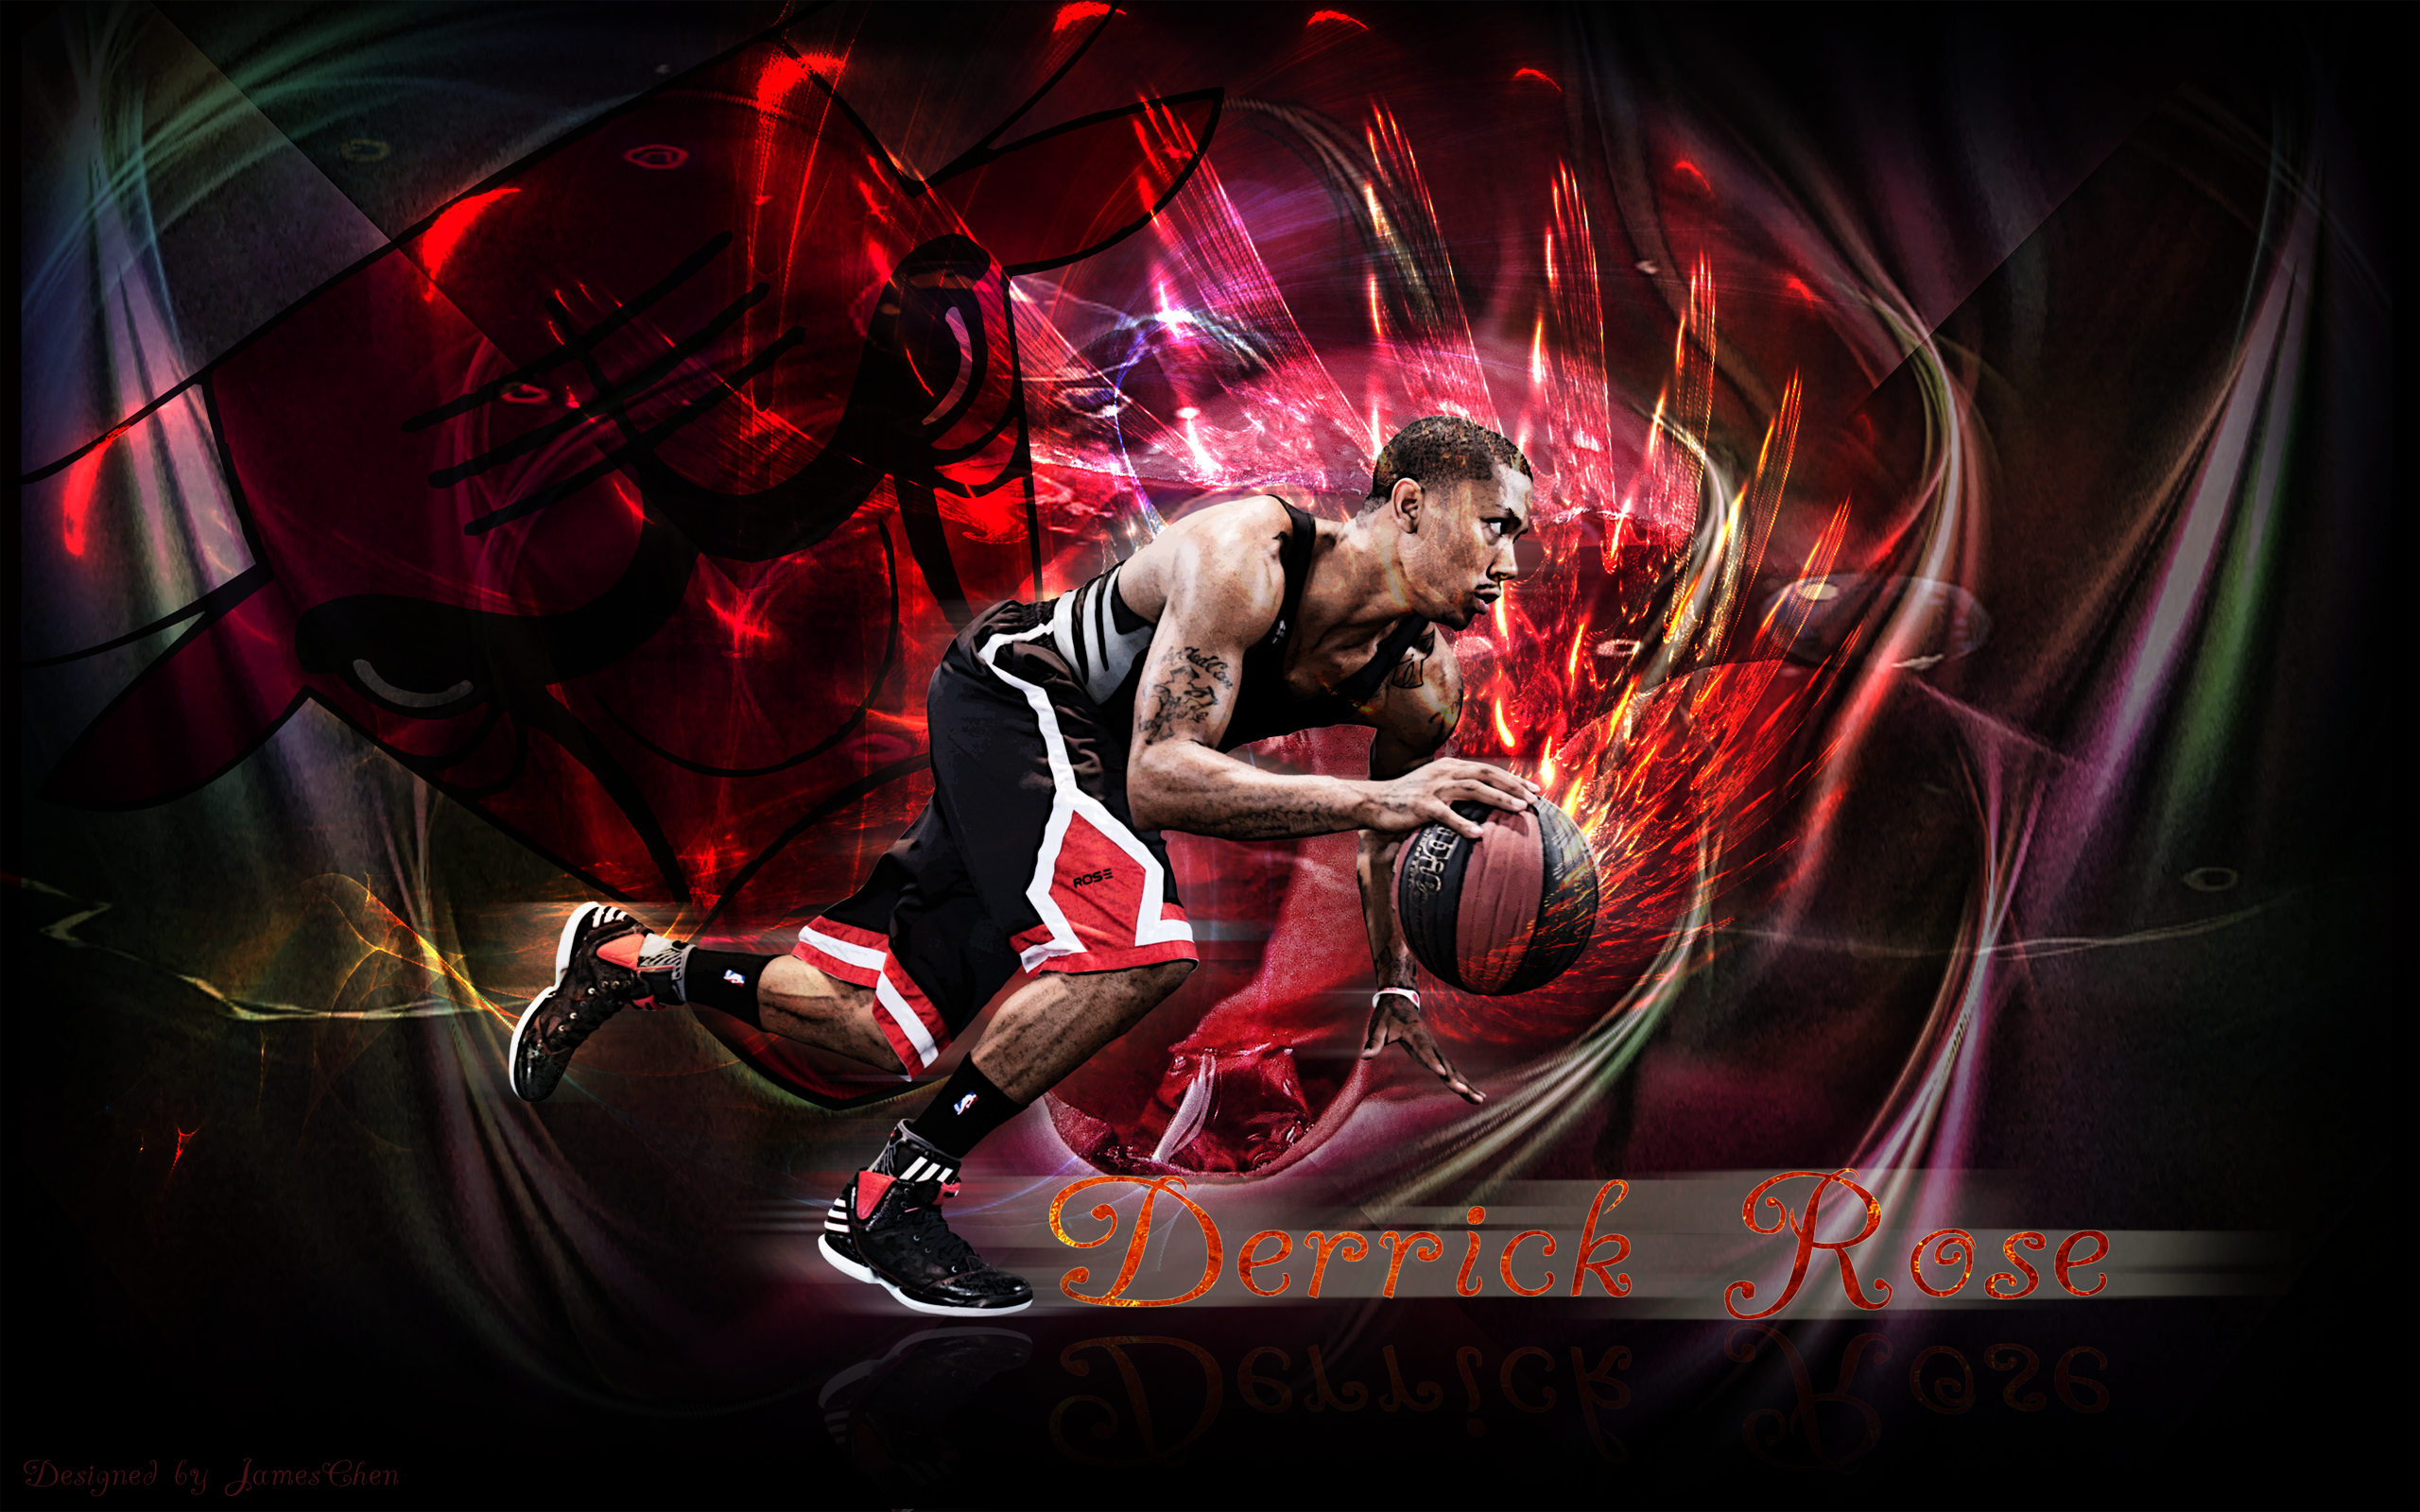 derrick rose hd wallpaper 1920x1080 - wallpapersafari